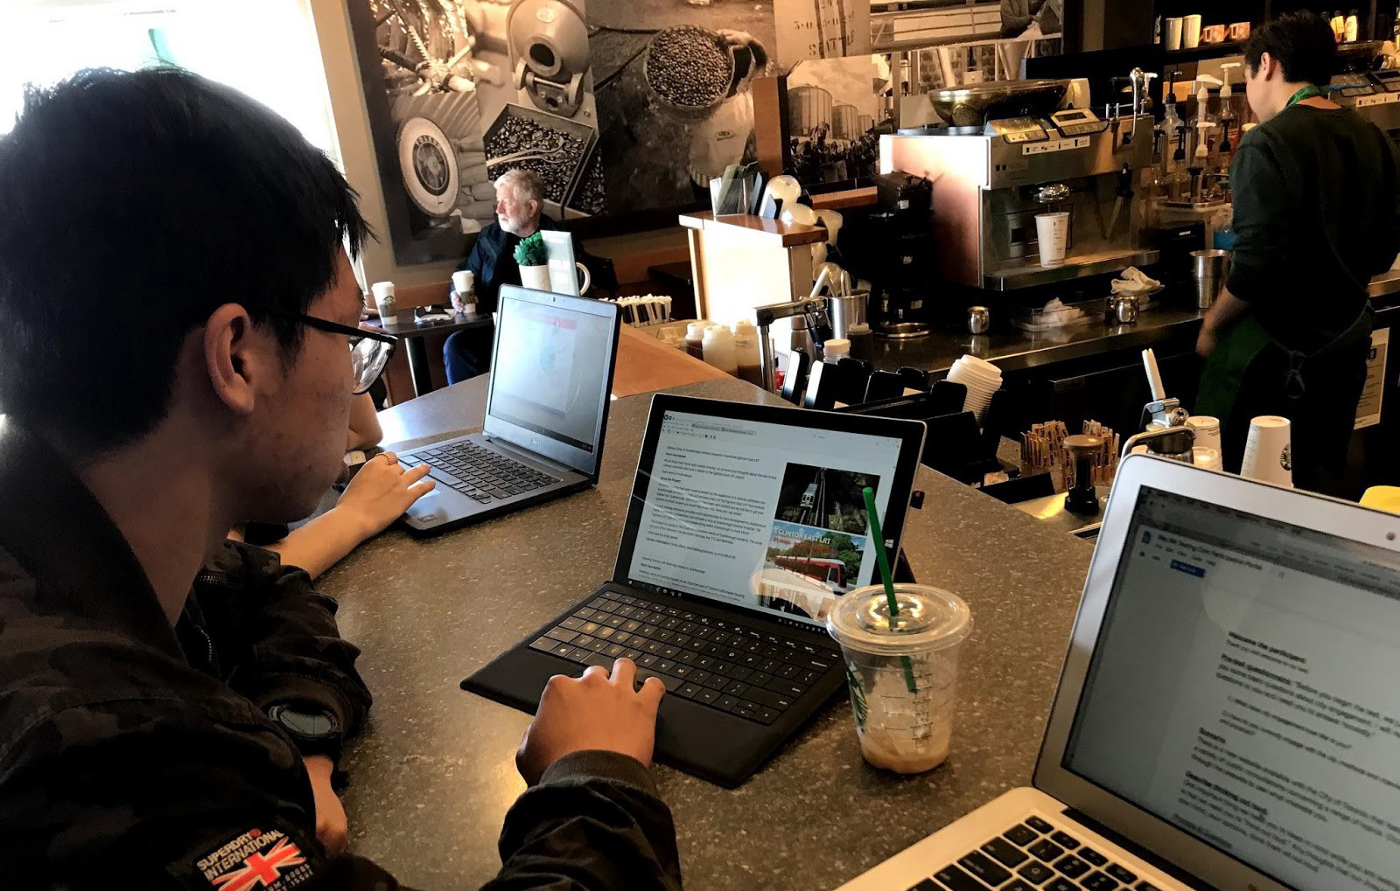 Taking one of our early-stage initiatives to the street at a busy coffee shop for feedback